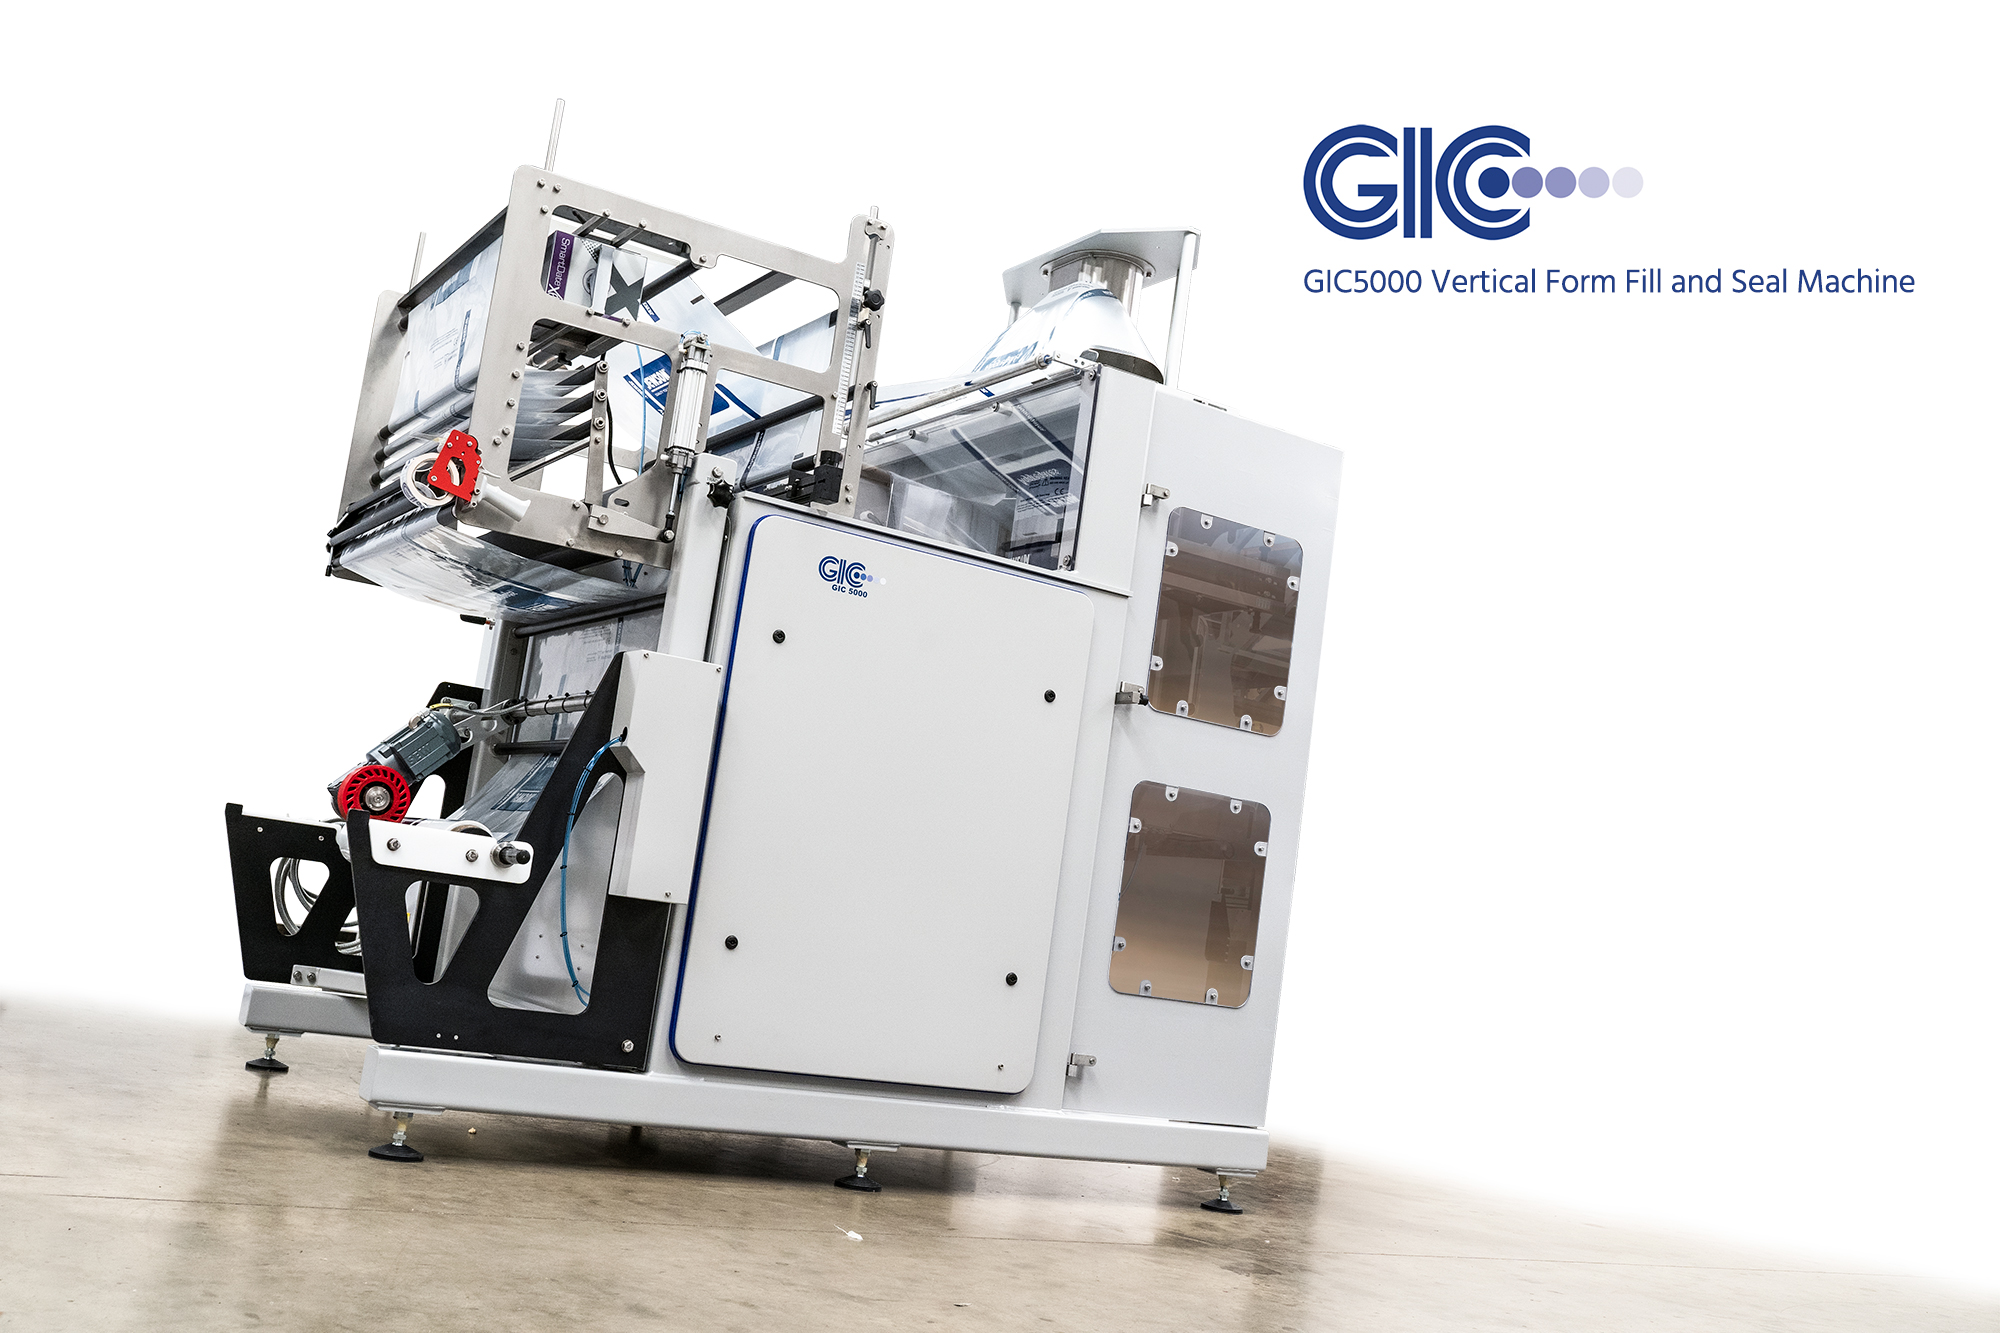 gic 5000 vffs bagging machine uk manufacturer